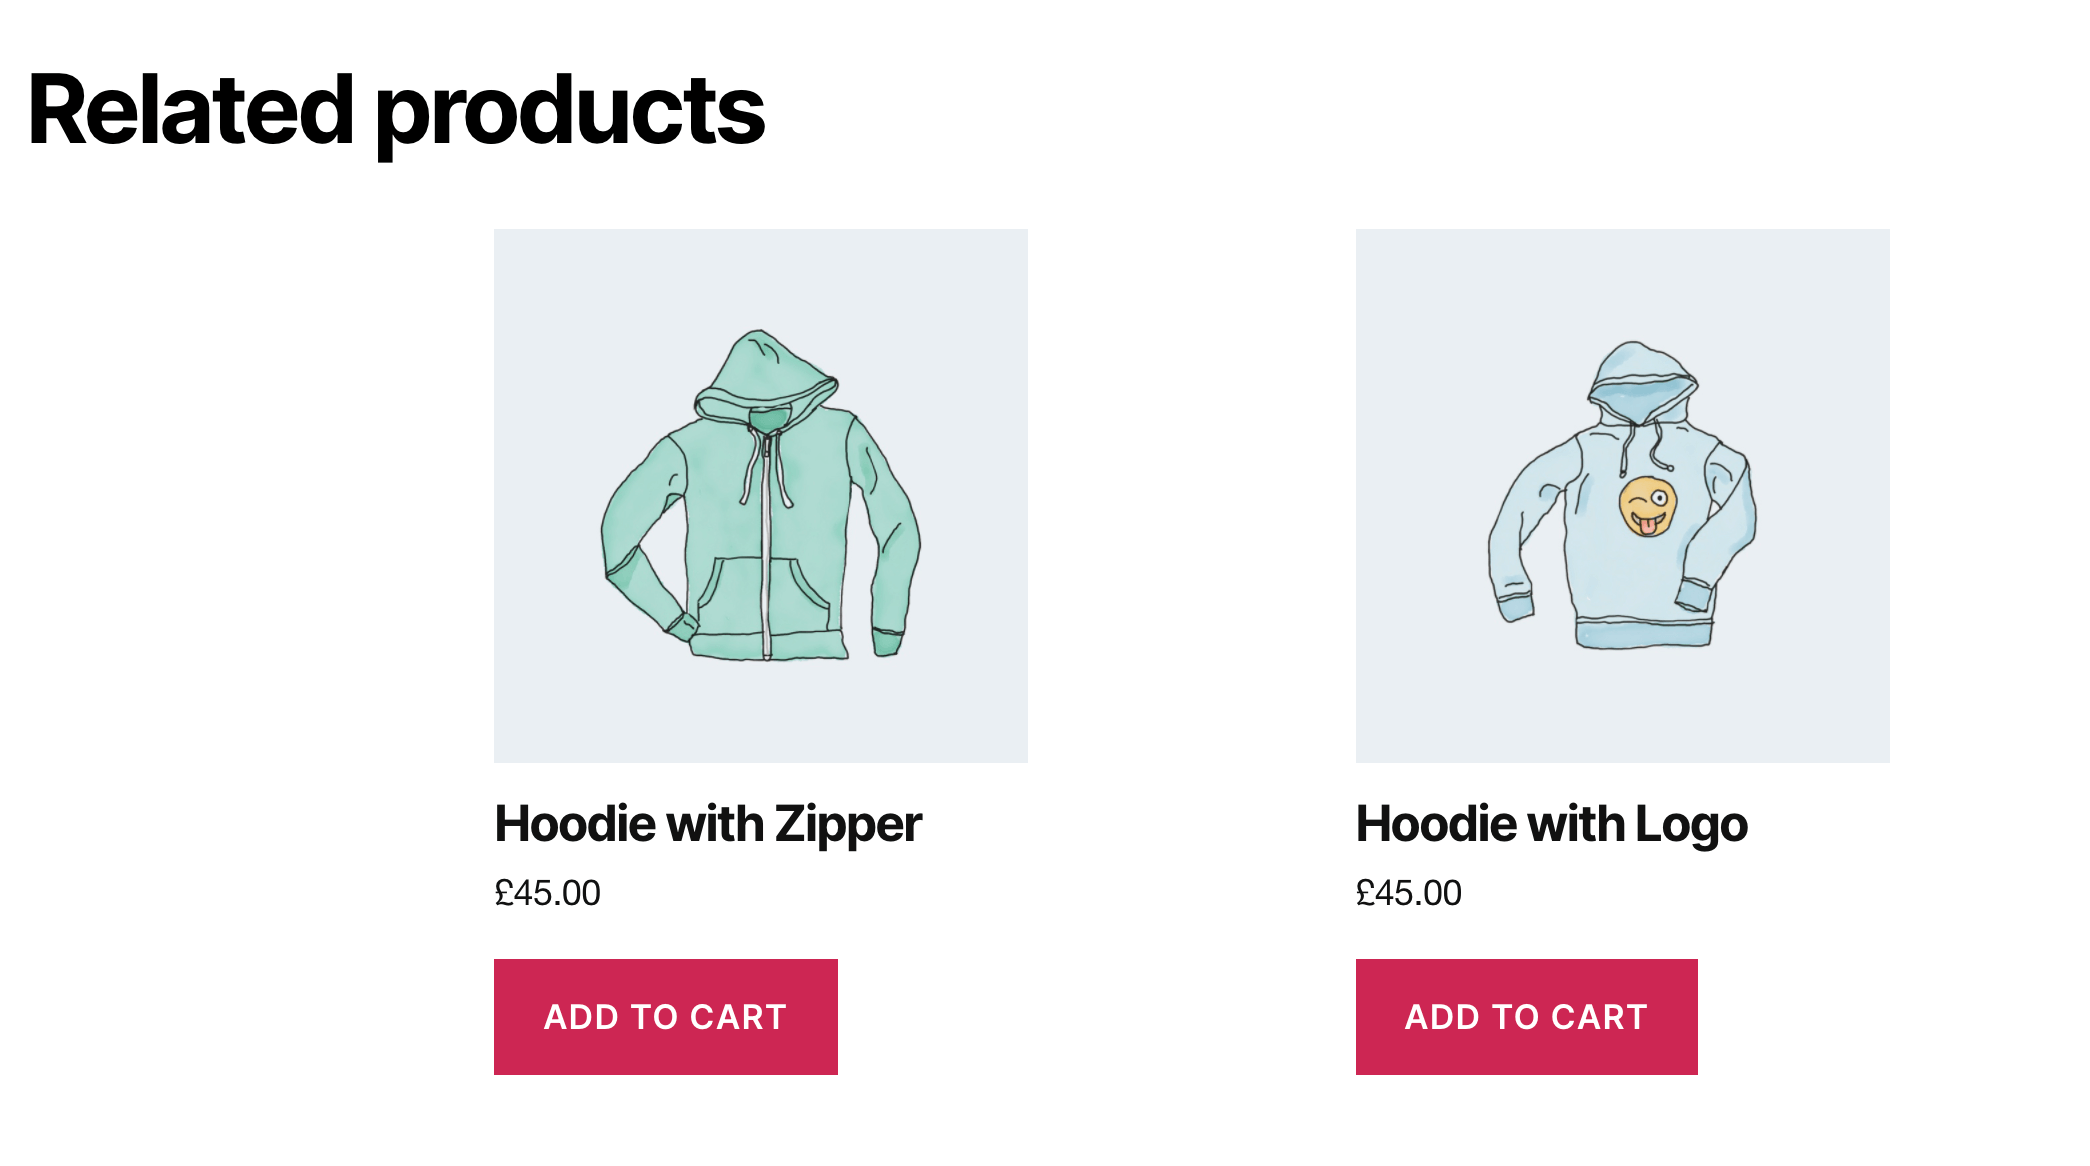 WooCommerce's built-in related products feature.